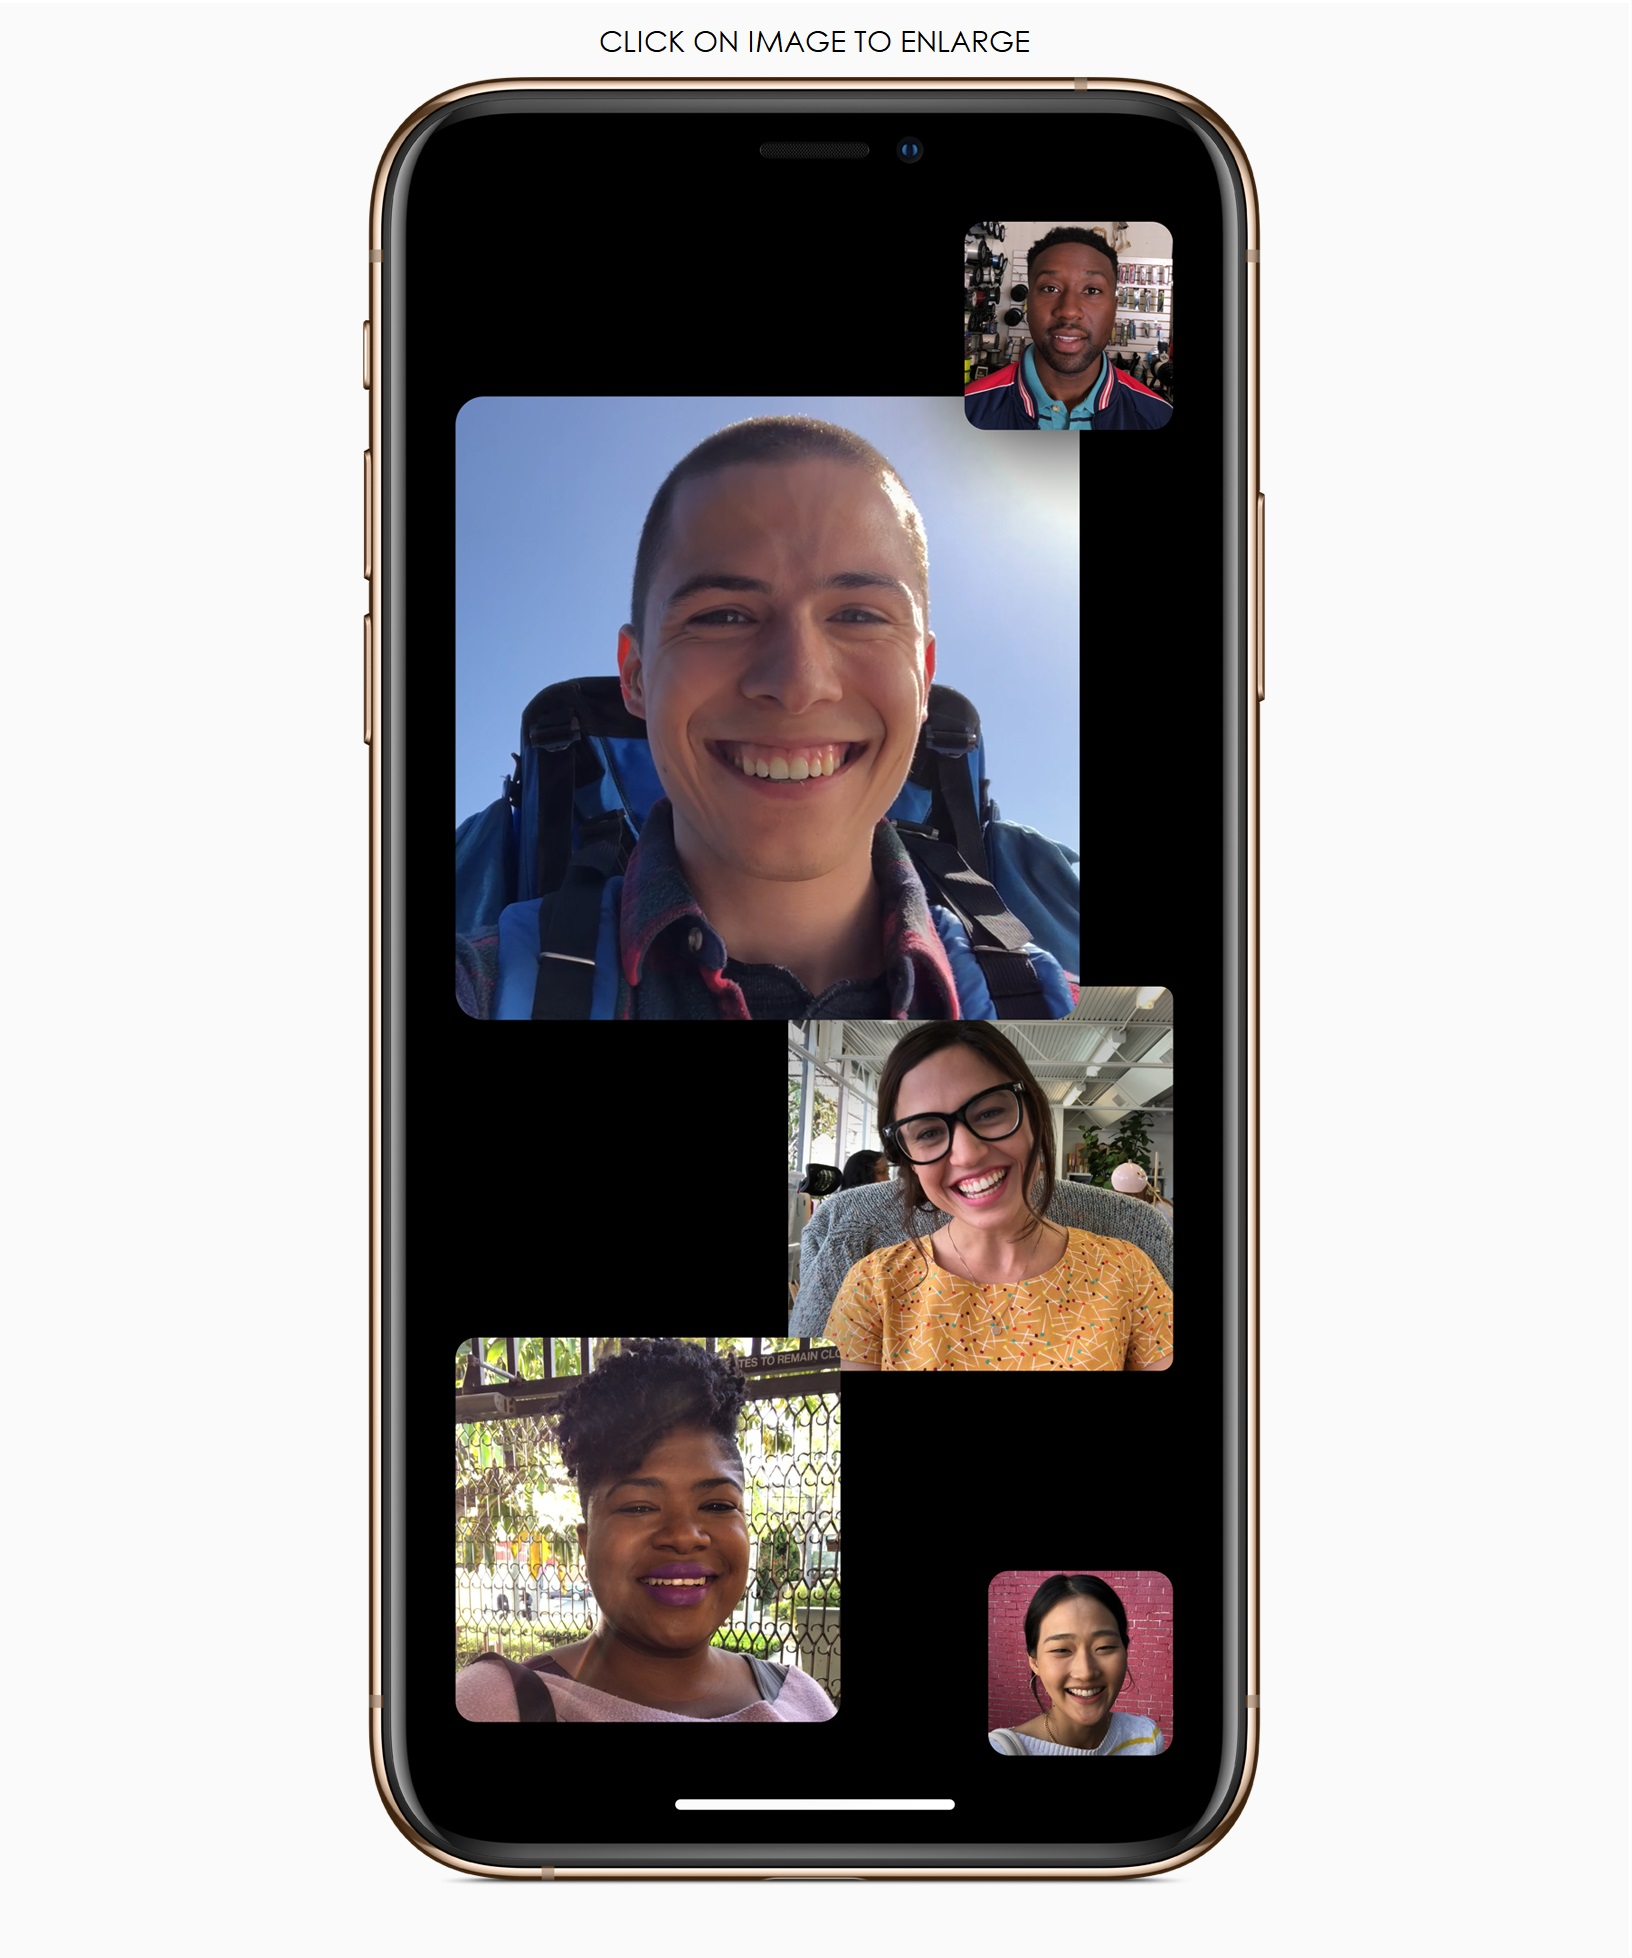 Apple's iOS 12 1 now brings Group FaceTime , Depth Control